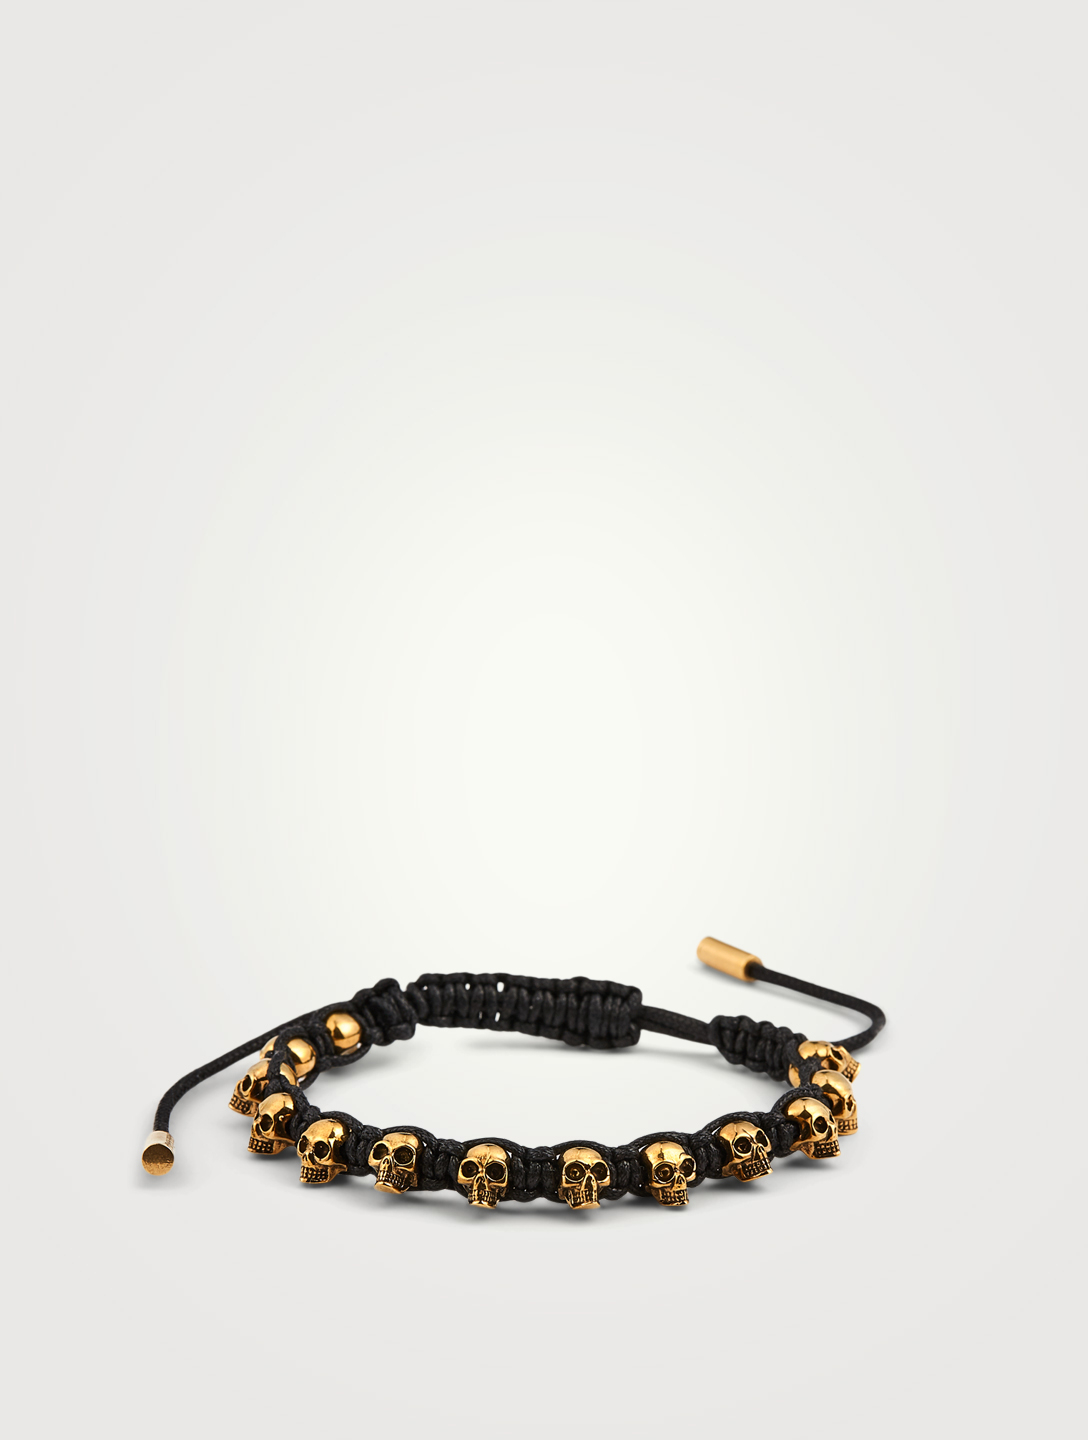 ALEXANDER MCQUEEN Skull Friendship Bracelet Men's Black